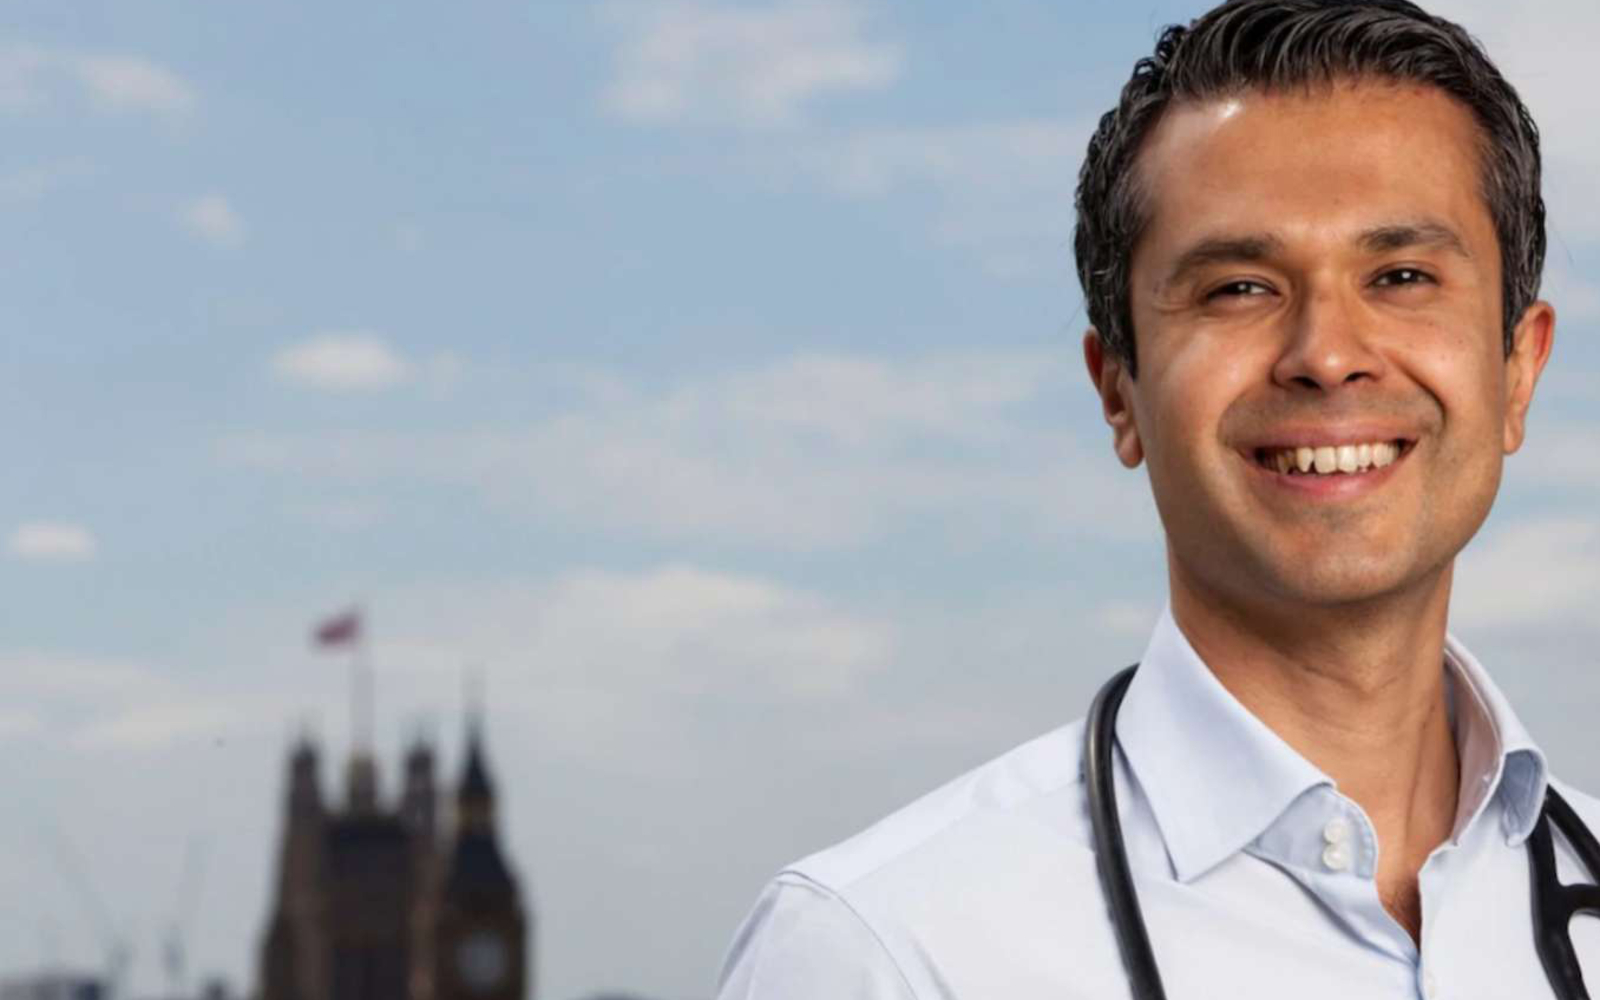 'I highly recommend you order' - Dr Aseem Malhotra